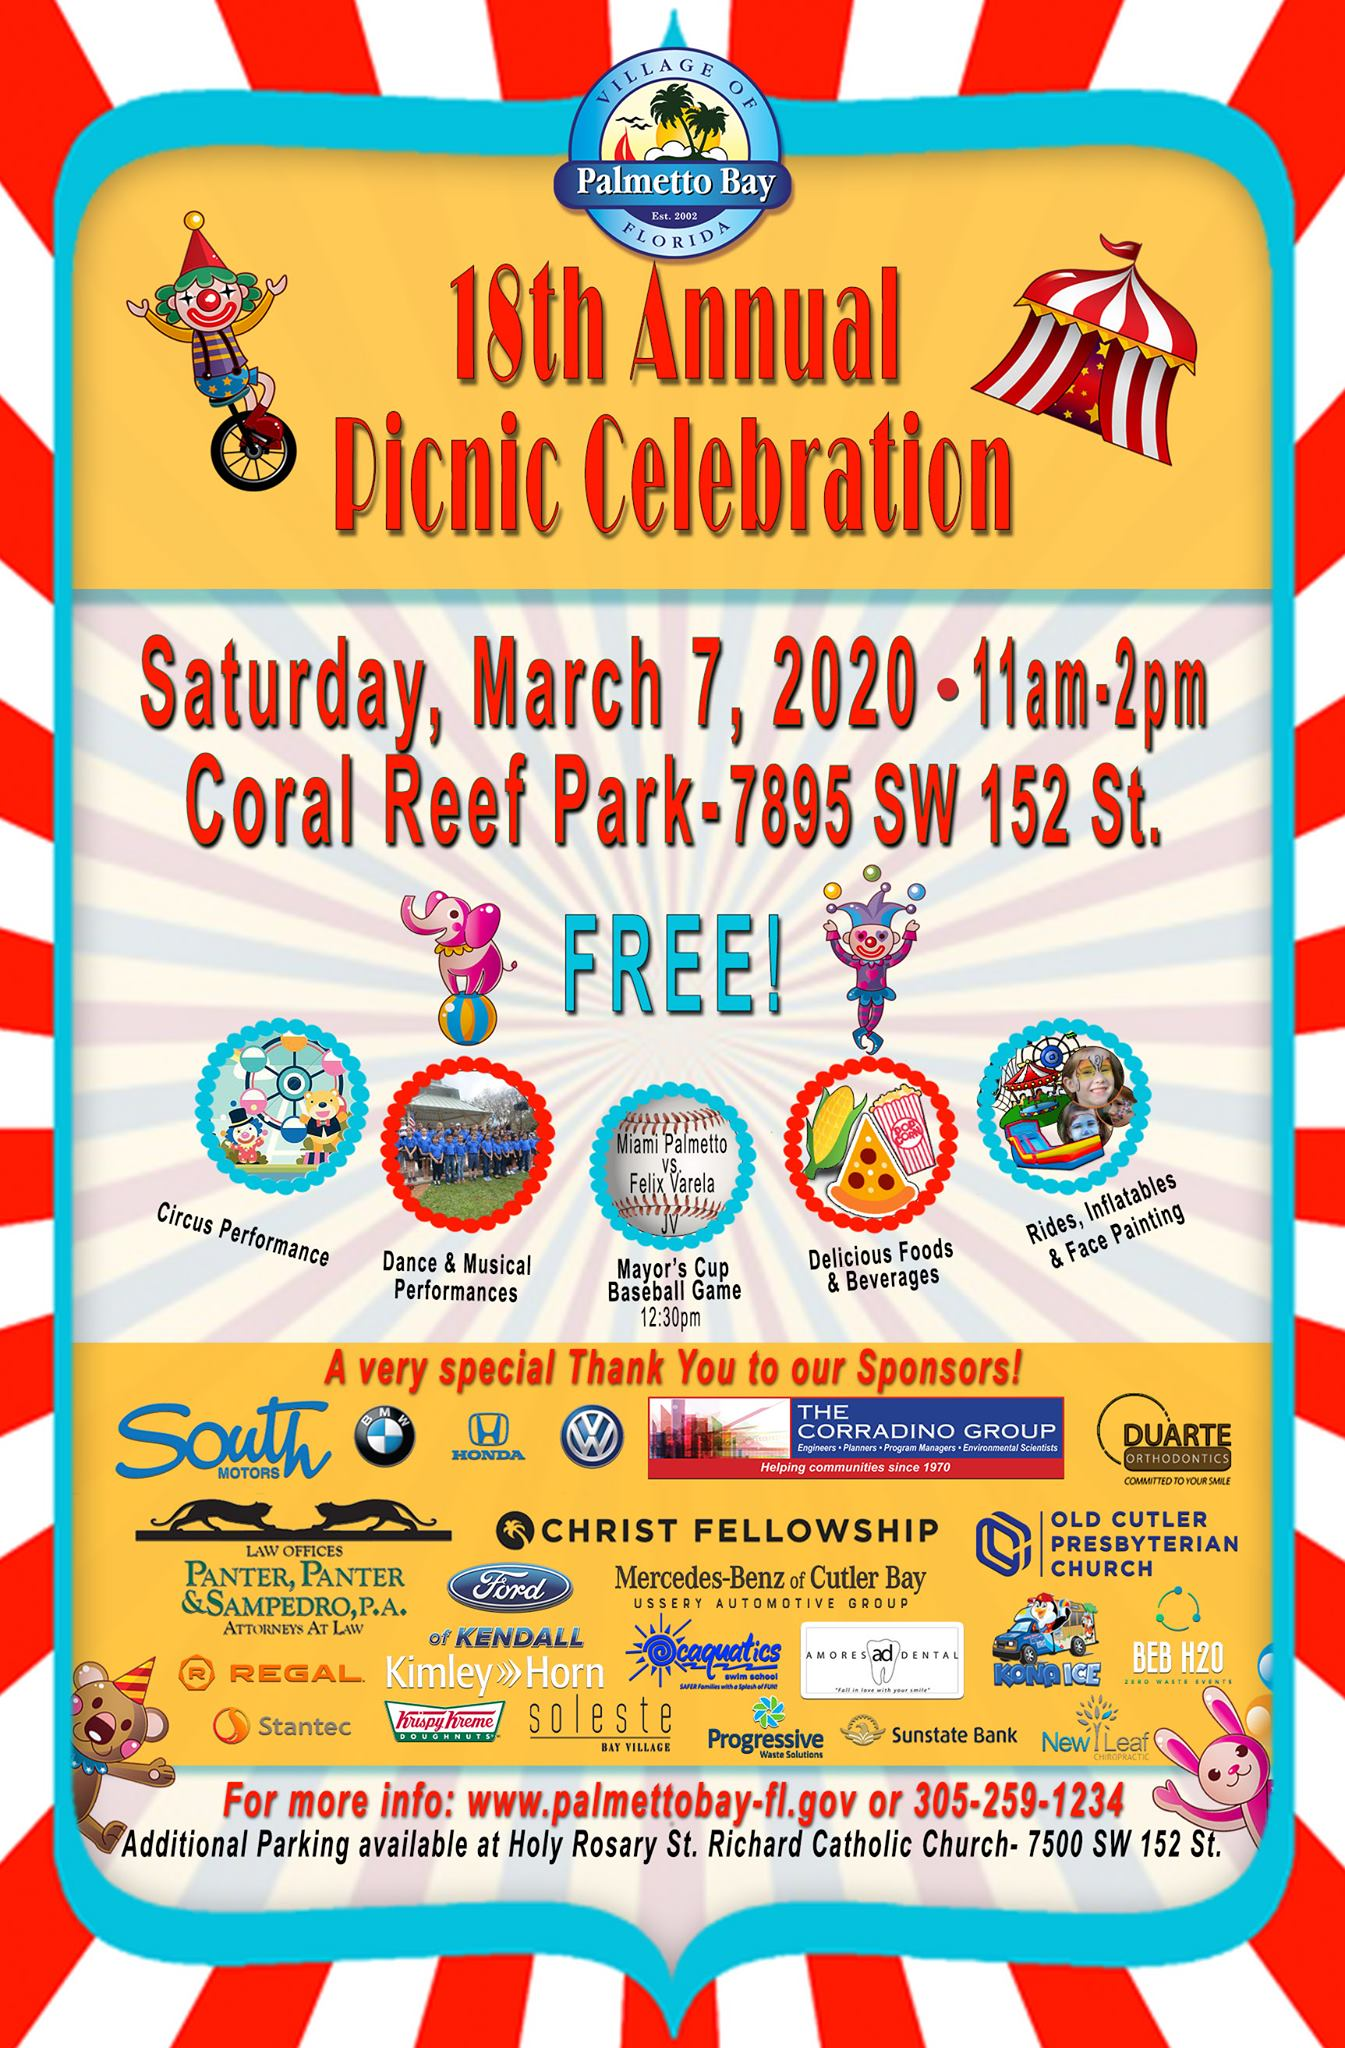 18th Annual Village of Palmetto Bay Picnic at Coral Reef Park on Saturday, March 7th from 11 a.m. -